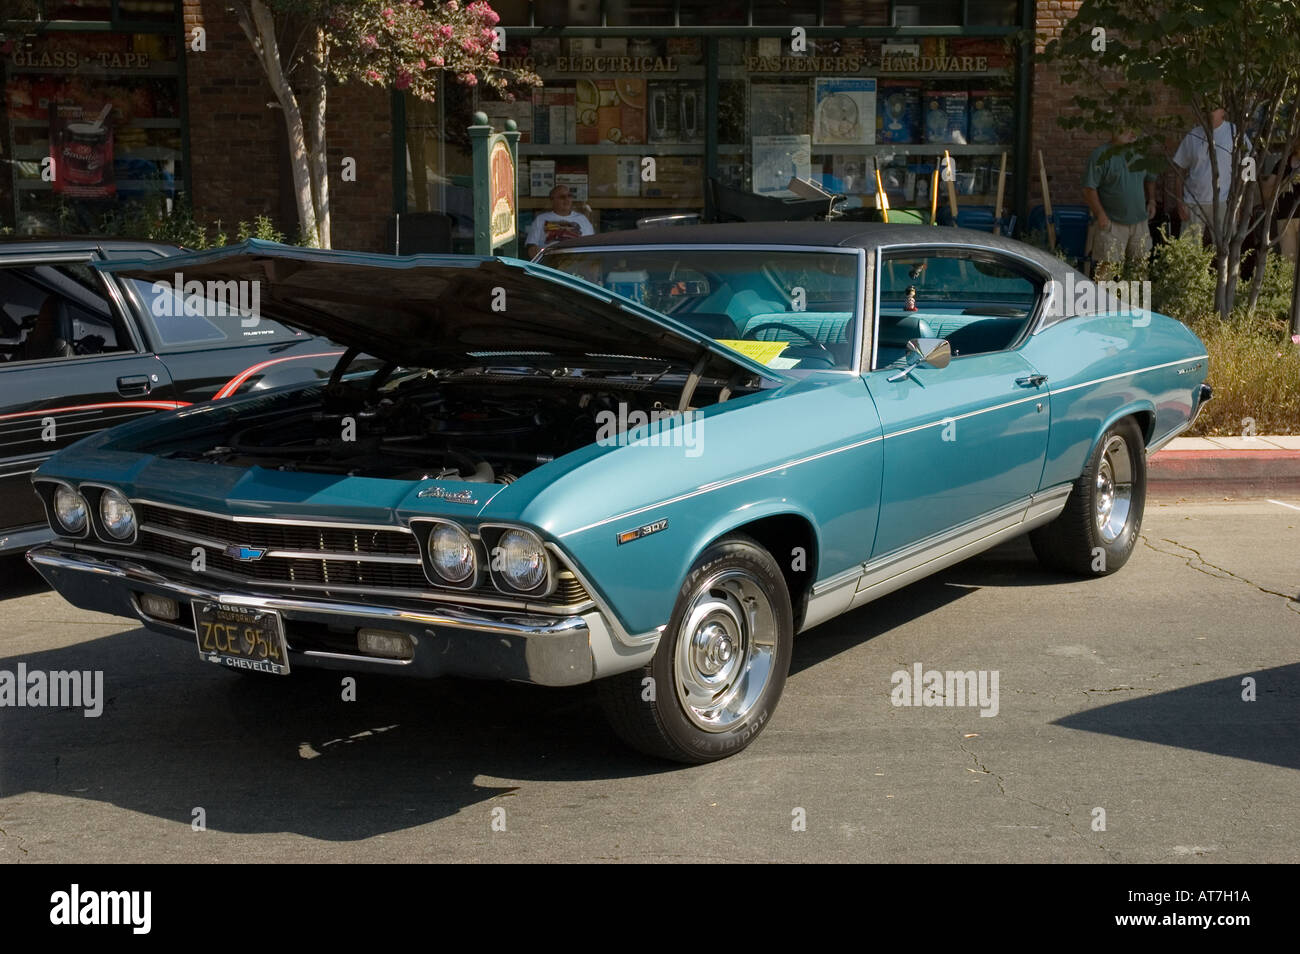 Los angeles california car show antique customized chevrolet chevy chevelle 1969 69 307 coupe 2 two